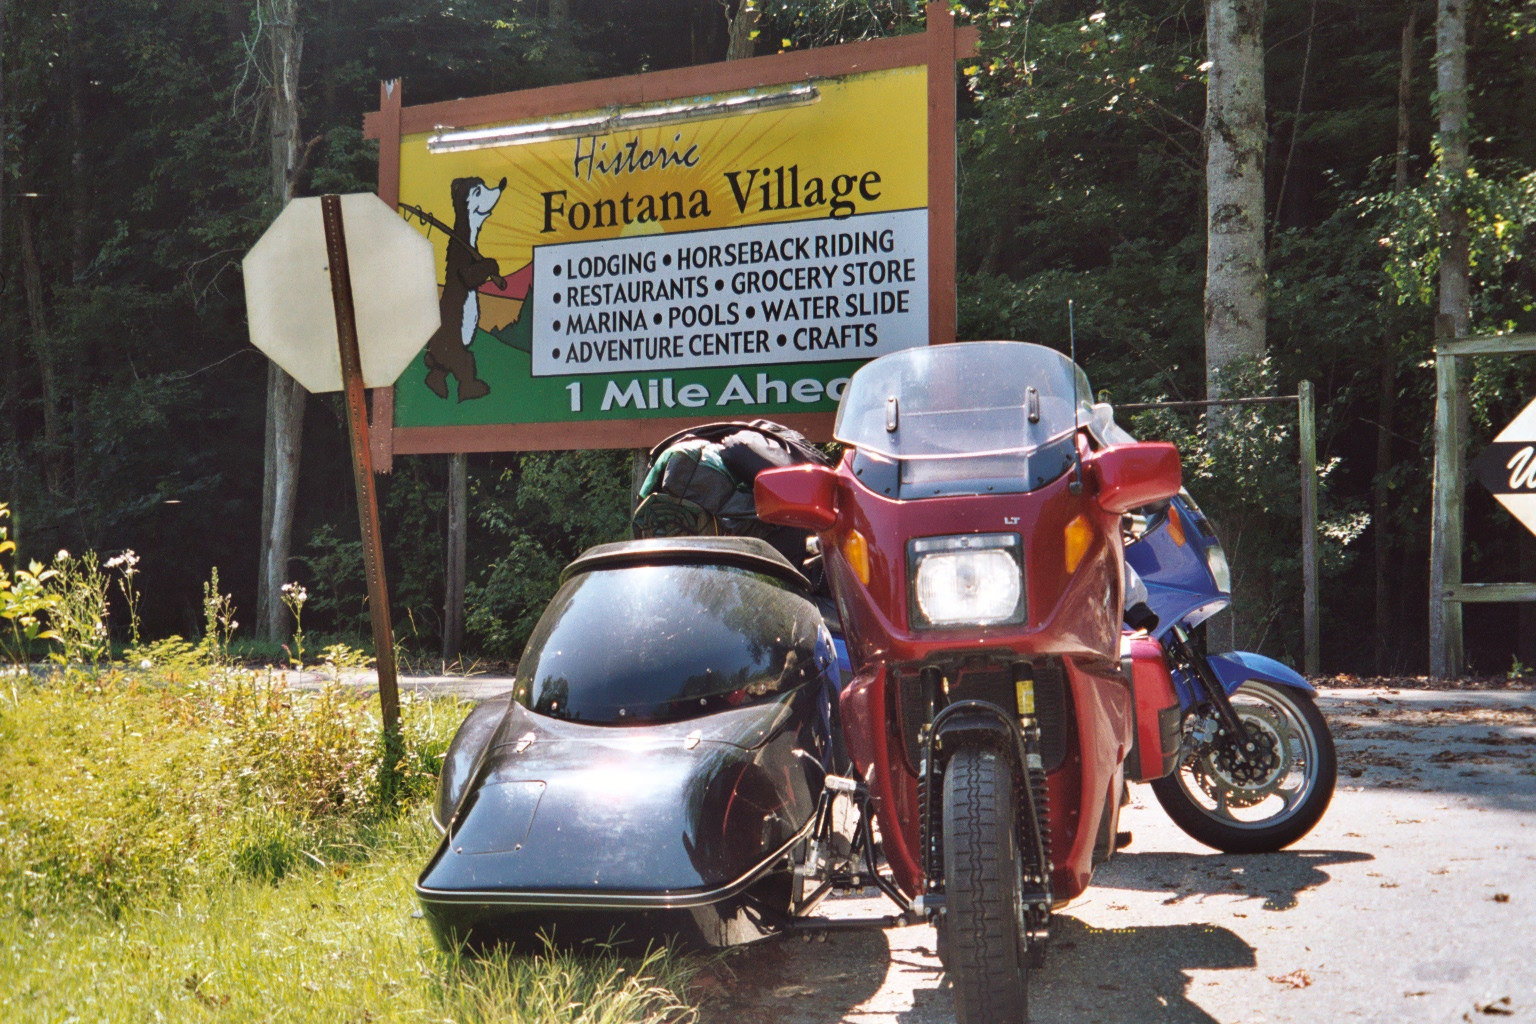 Steve and I at the Fontana Village sign